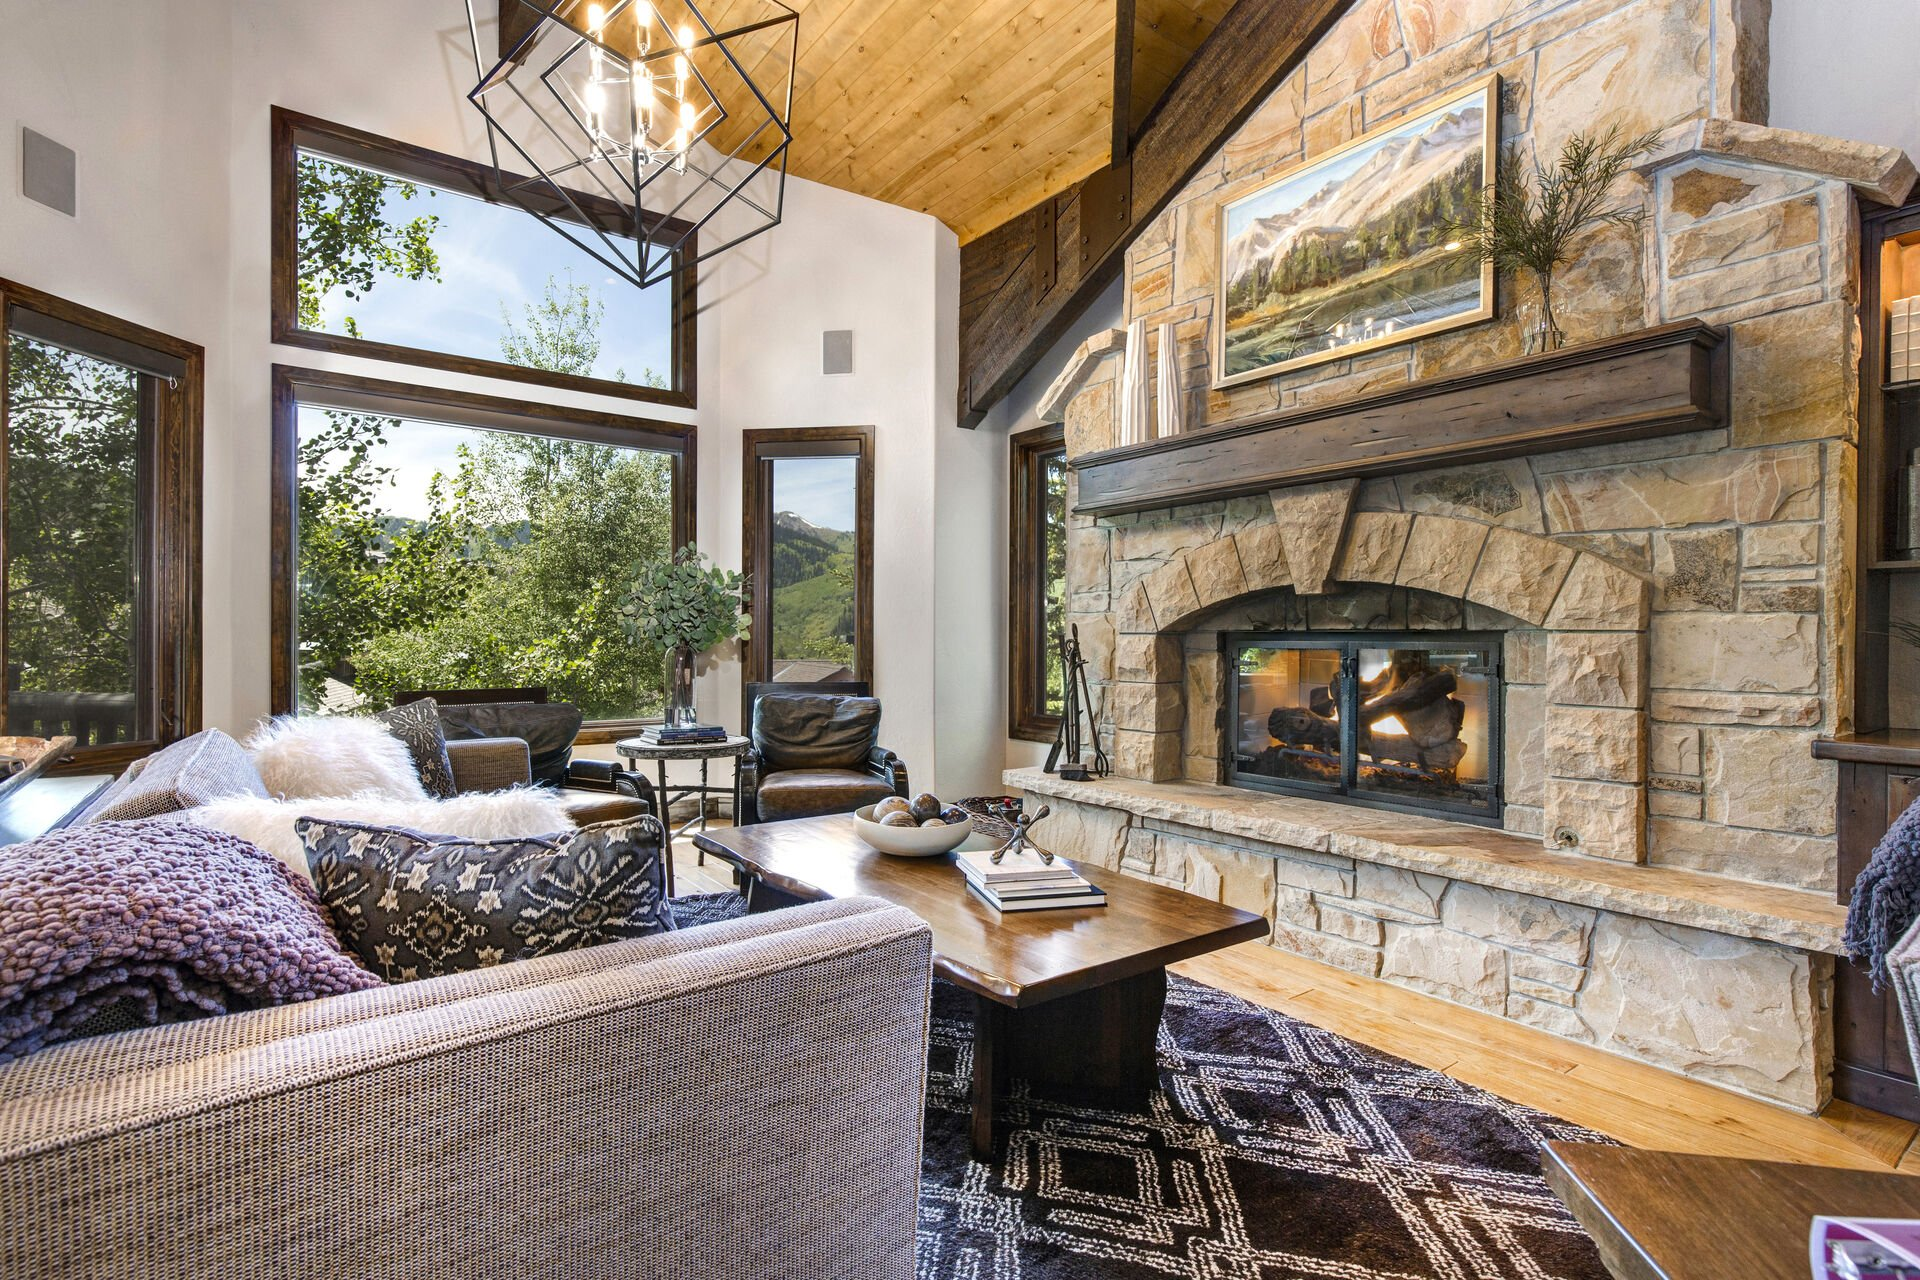 Living Room with Fireplace and TV of Our Deer Valley House Rental.